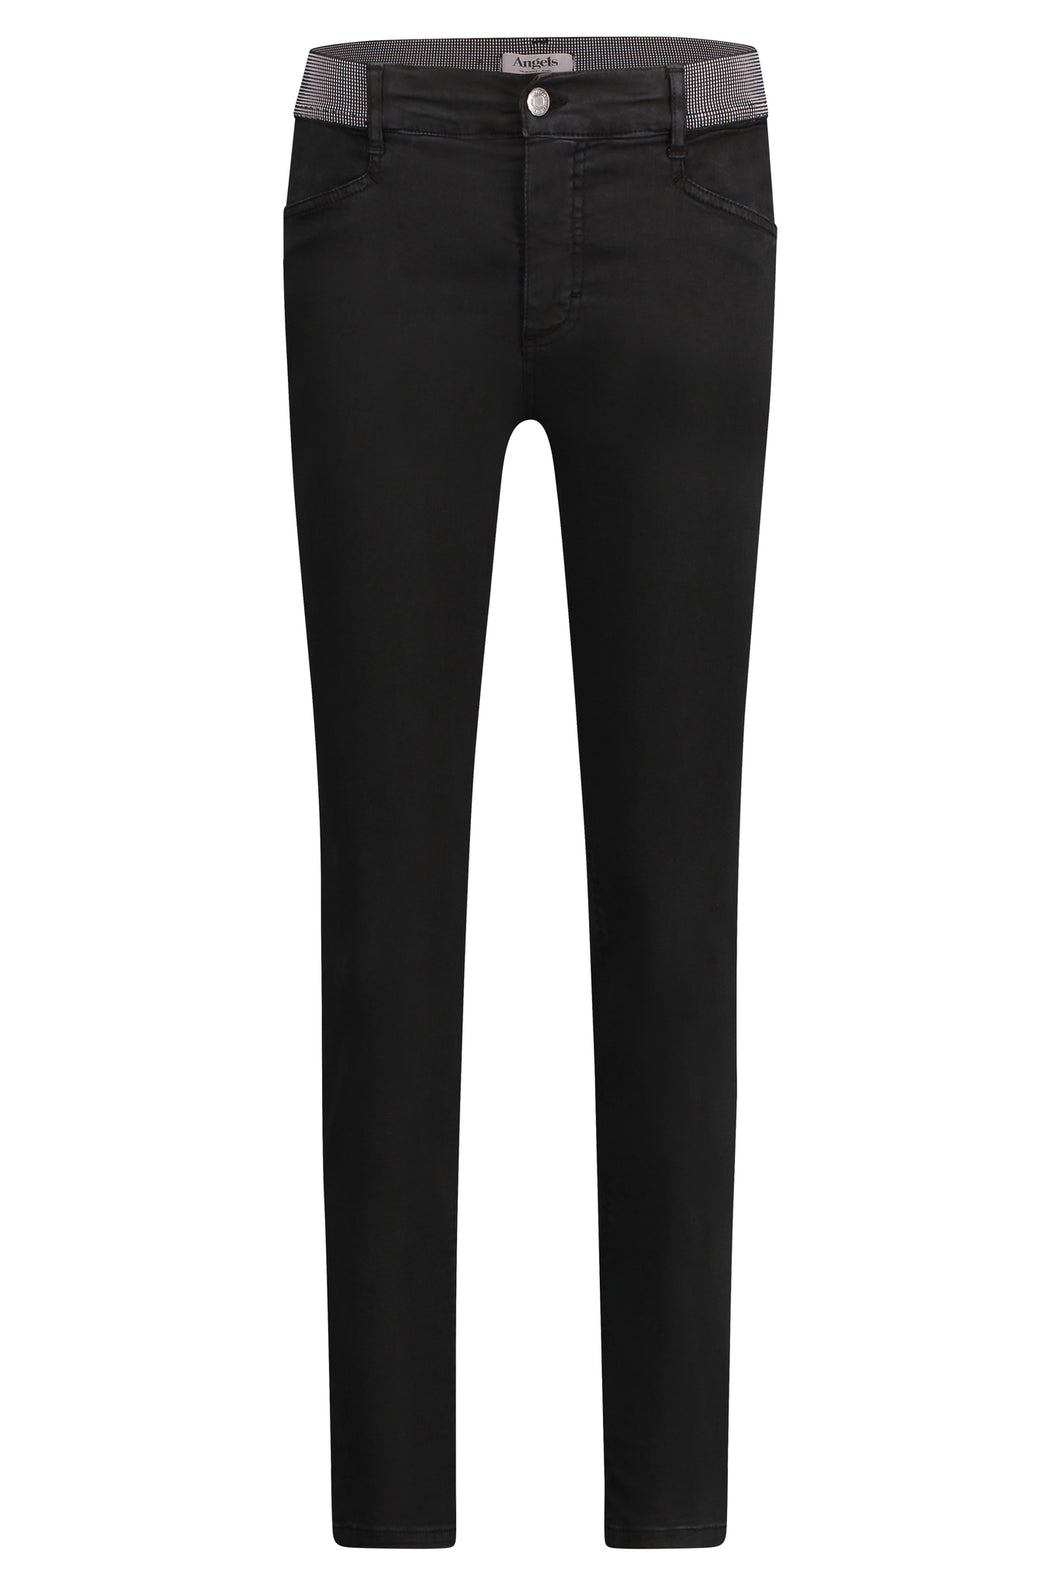 Angels 9 Broek Ornella Sporty